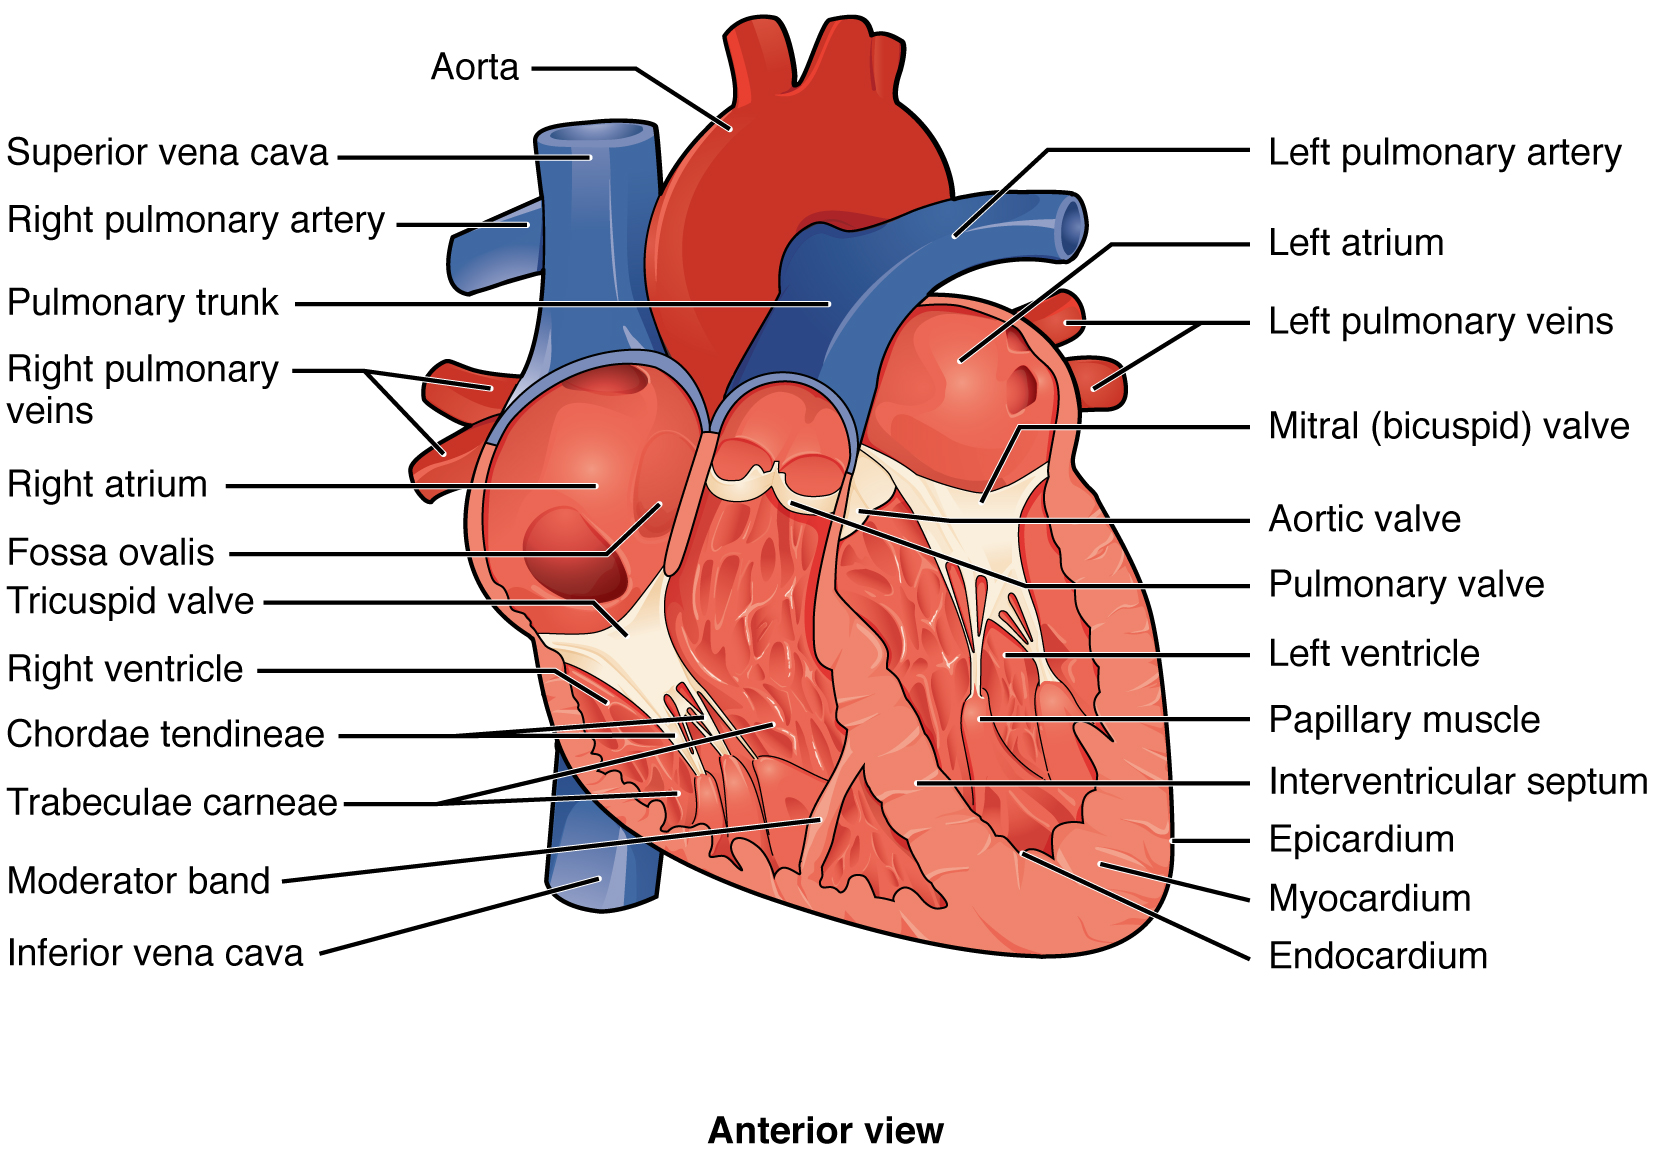 In this figure the top panel shows the image of the heart with the major parts labeled. The bottom left panel shows a photo of the heart with the surface layer peeled off. The images on the bottom right show detailed musculature inside the heart.